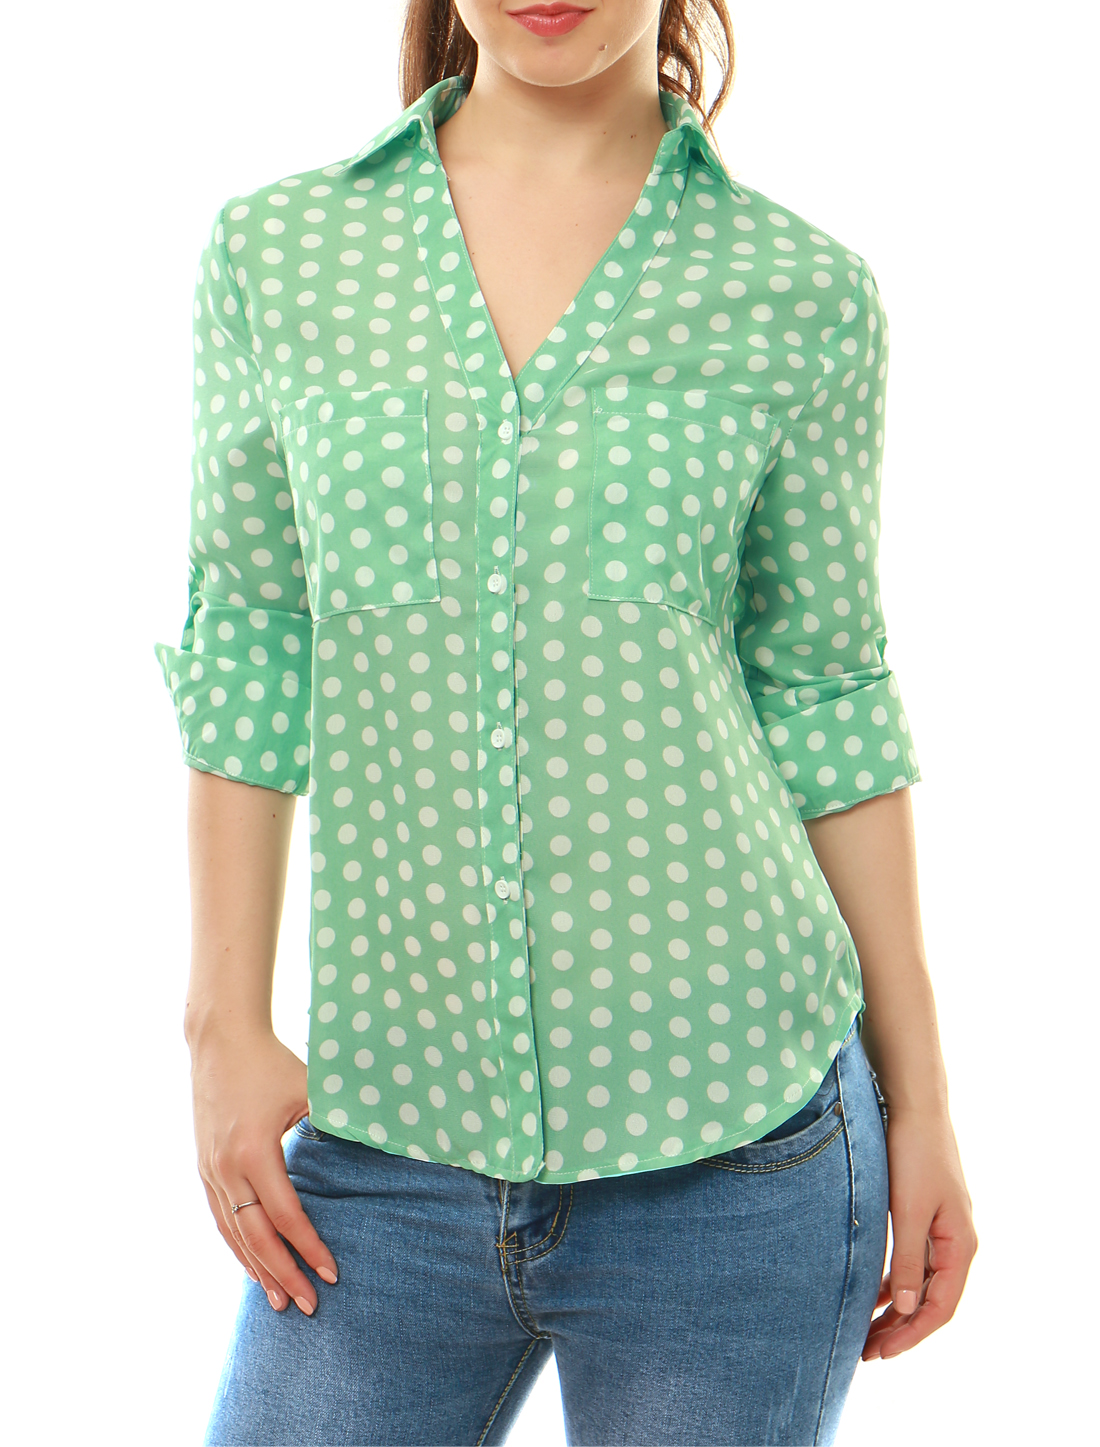 Women Polka Dots Point Collar Convertible Sleeve Shirt Green XL